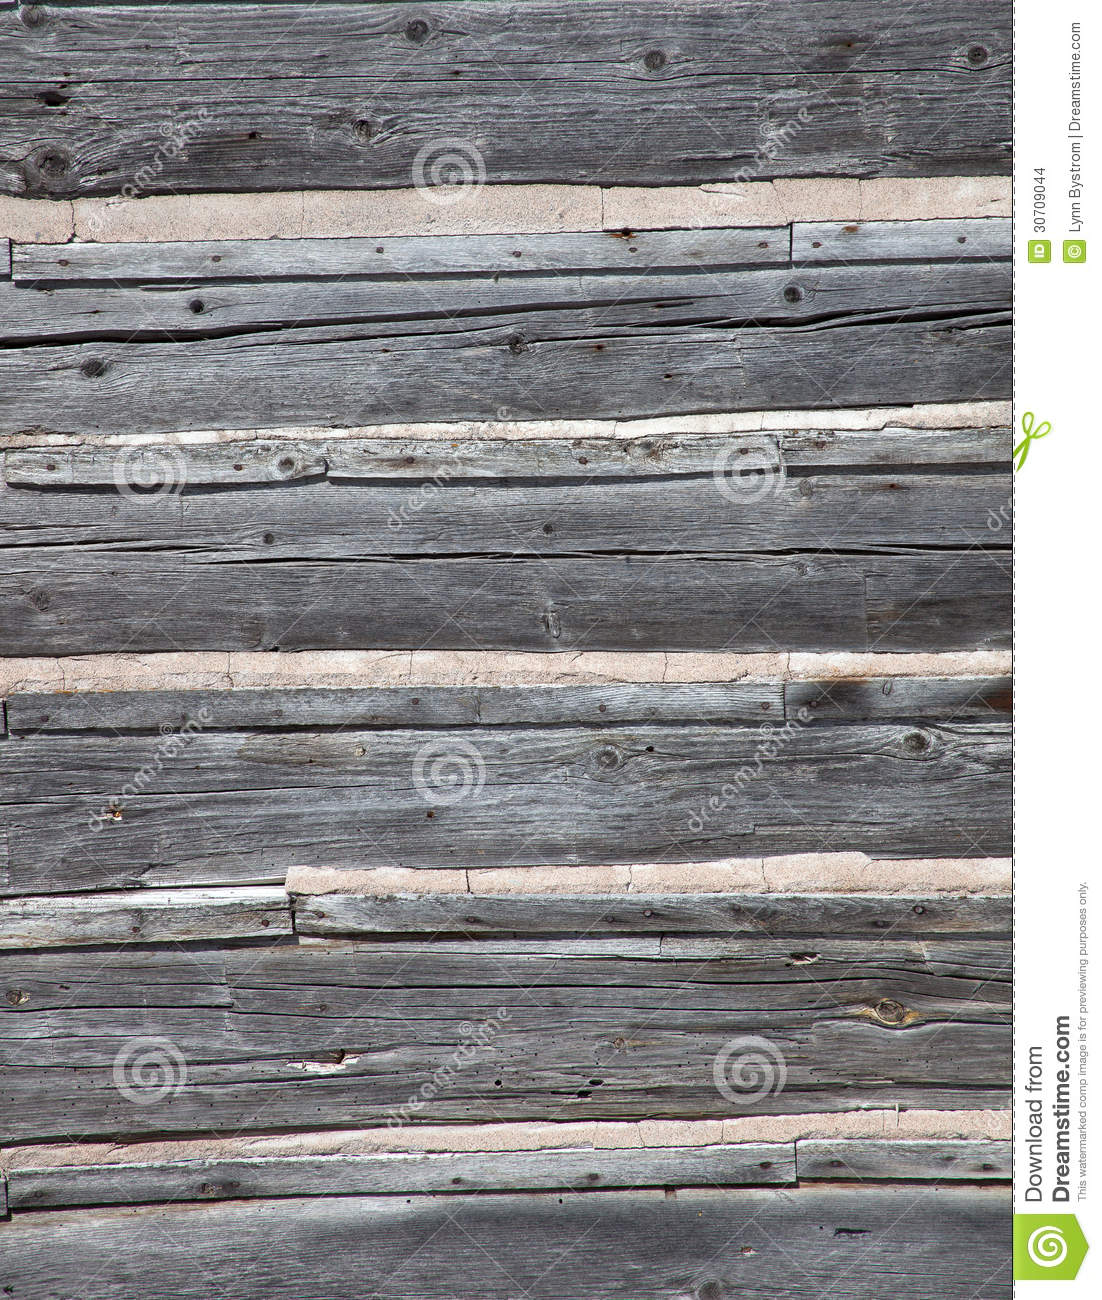 Weathered Barn Wood : Detail of old, weathered barn wood with chinking. Rough texture ...